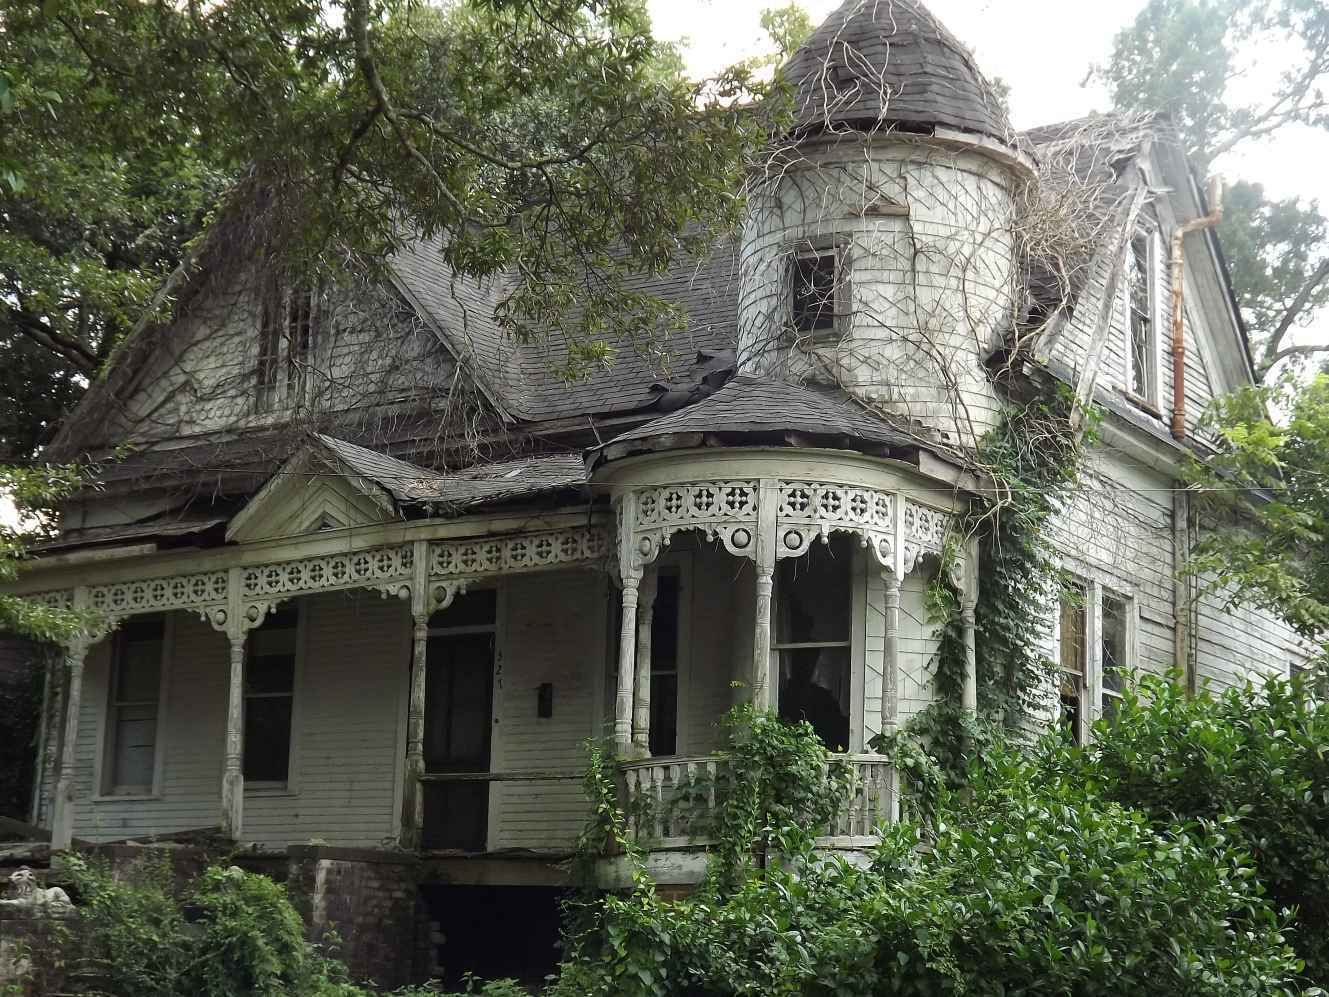 Large Victorian home in need of restorations is waiting for the